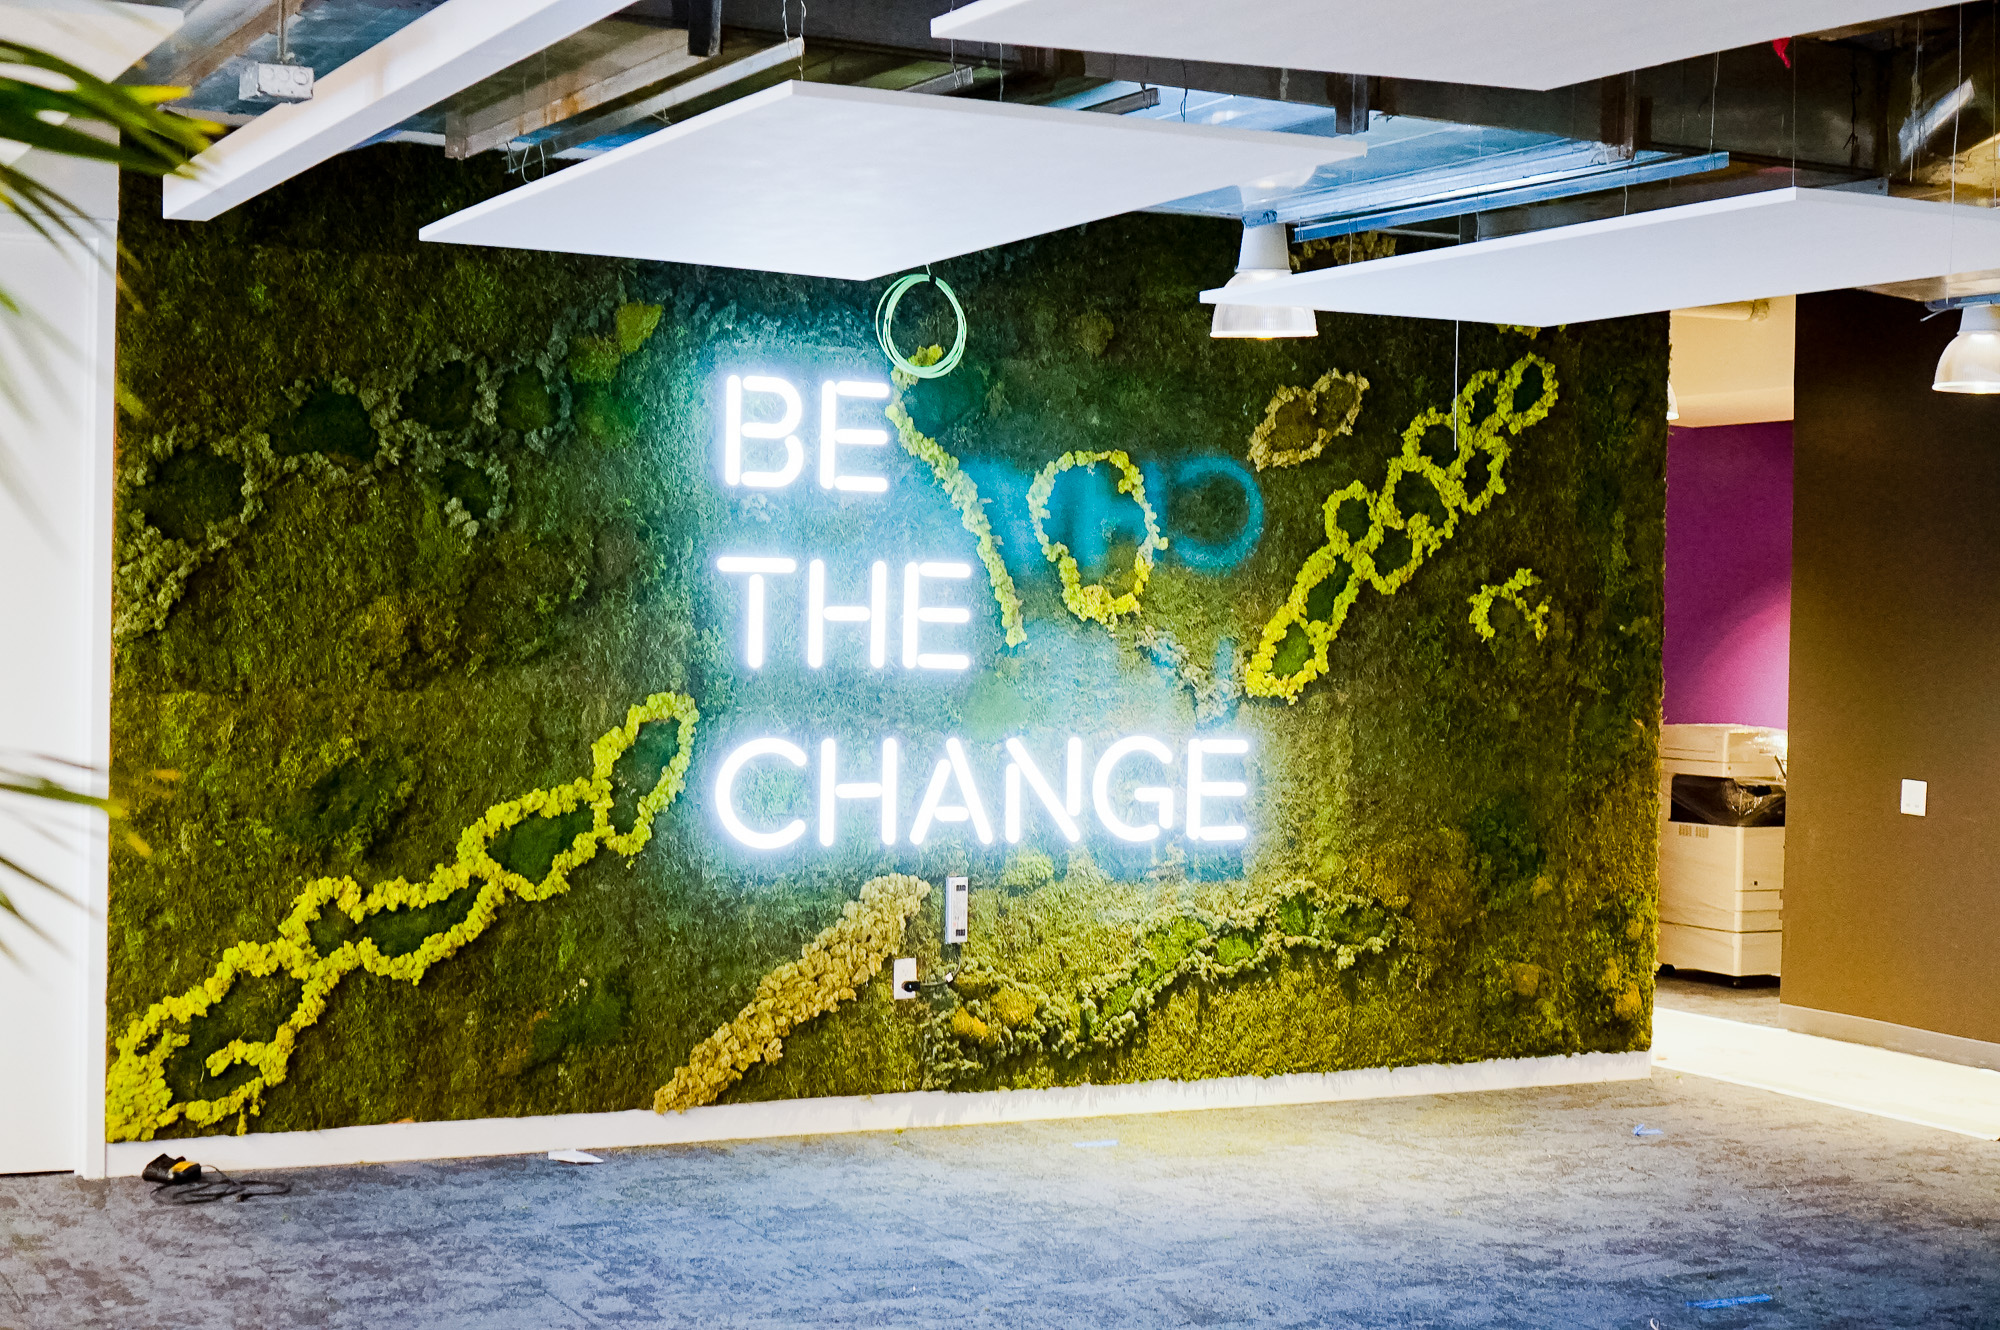 "Neon-style, motivational ""be the change"" sign on a large moss / living wall for Scale, a San Francisco based company delivering high quality training data for AI applications such as self-driving cars, mapping, AR/VR, robotics, and more."